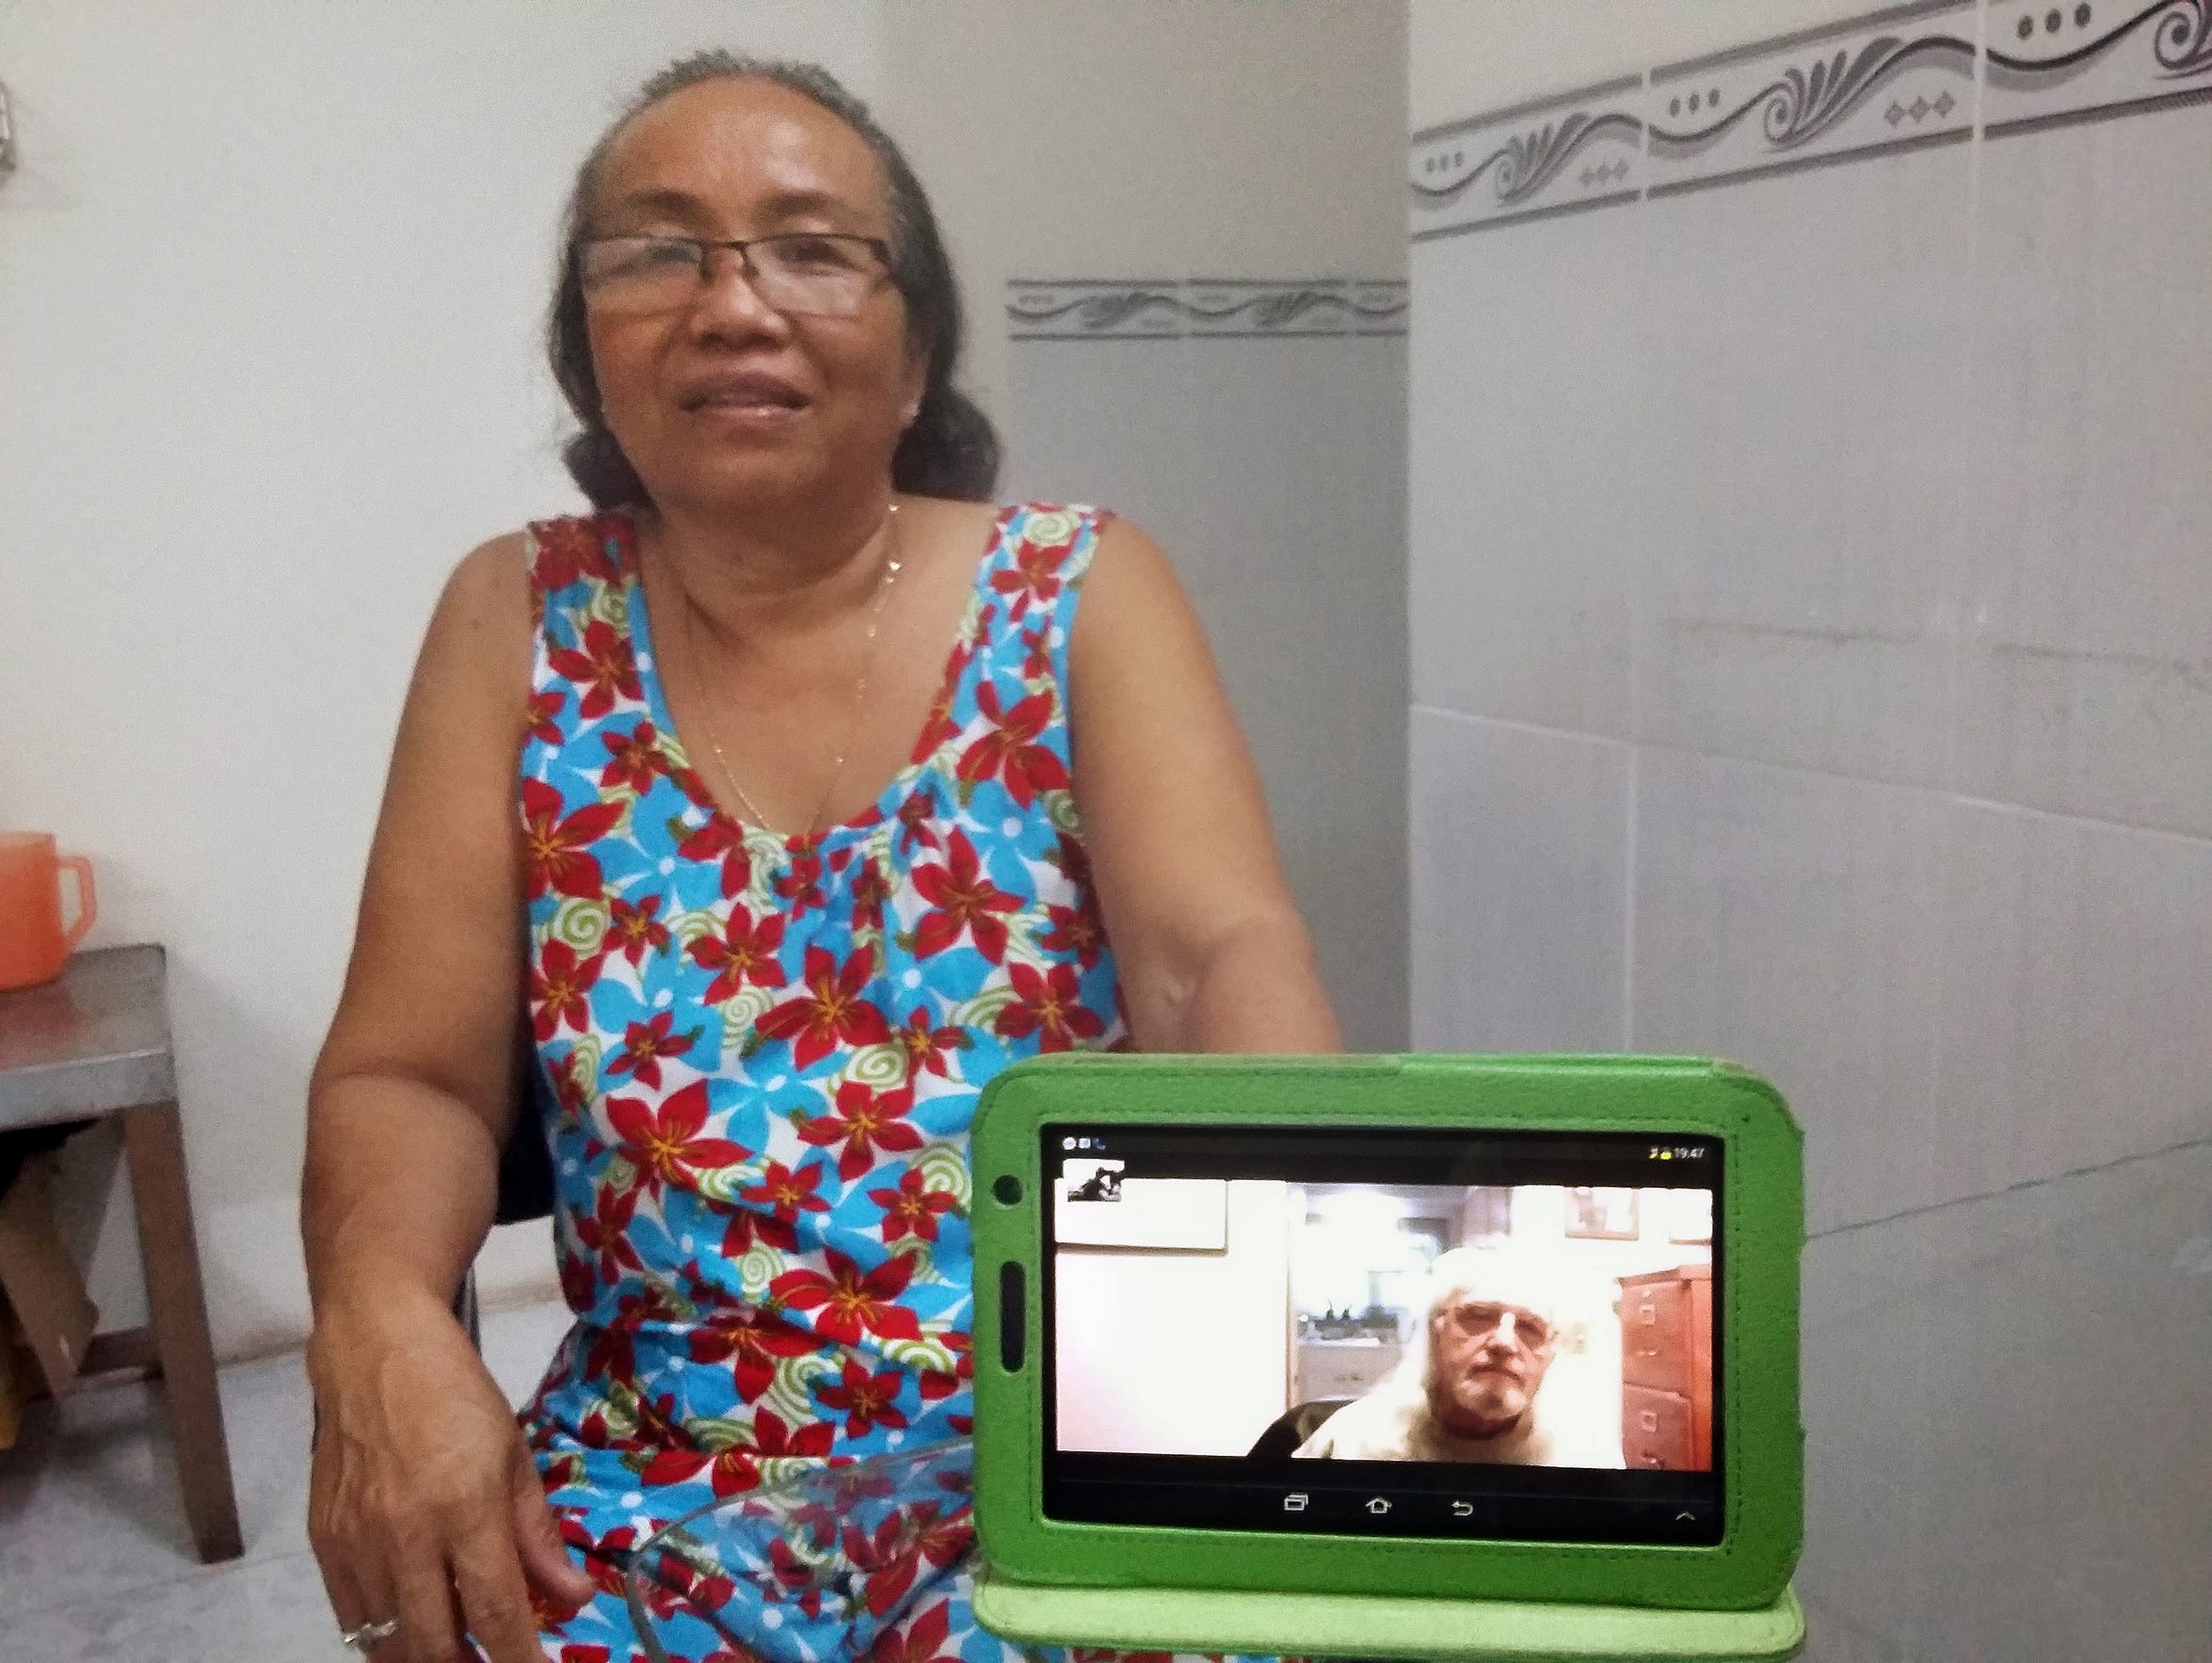 From her home in Vietnam, Kim Hoa uses a Skype-like